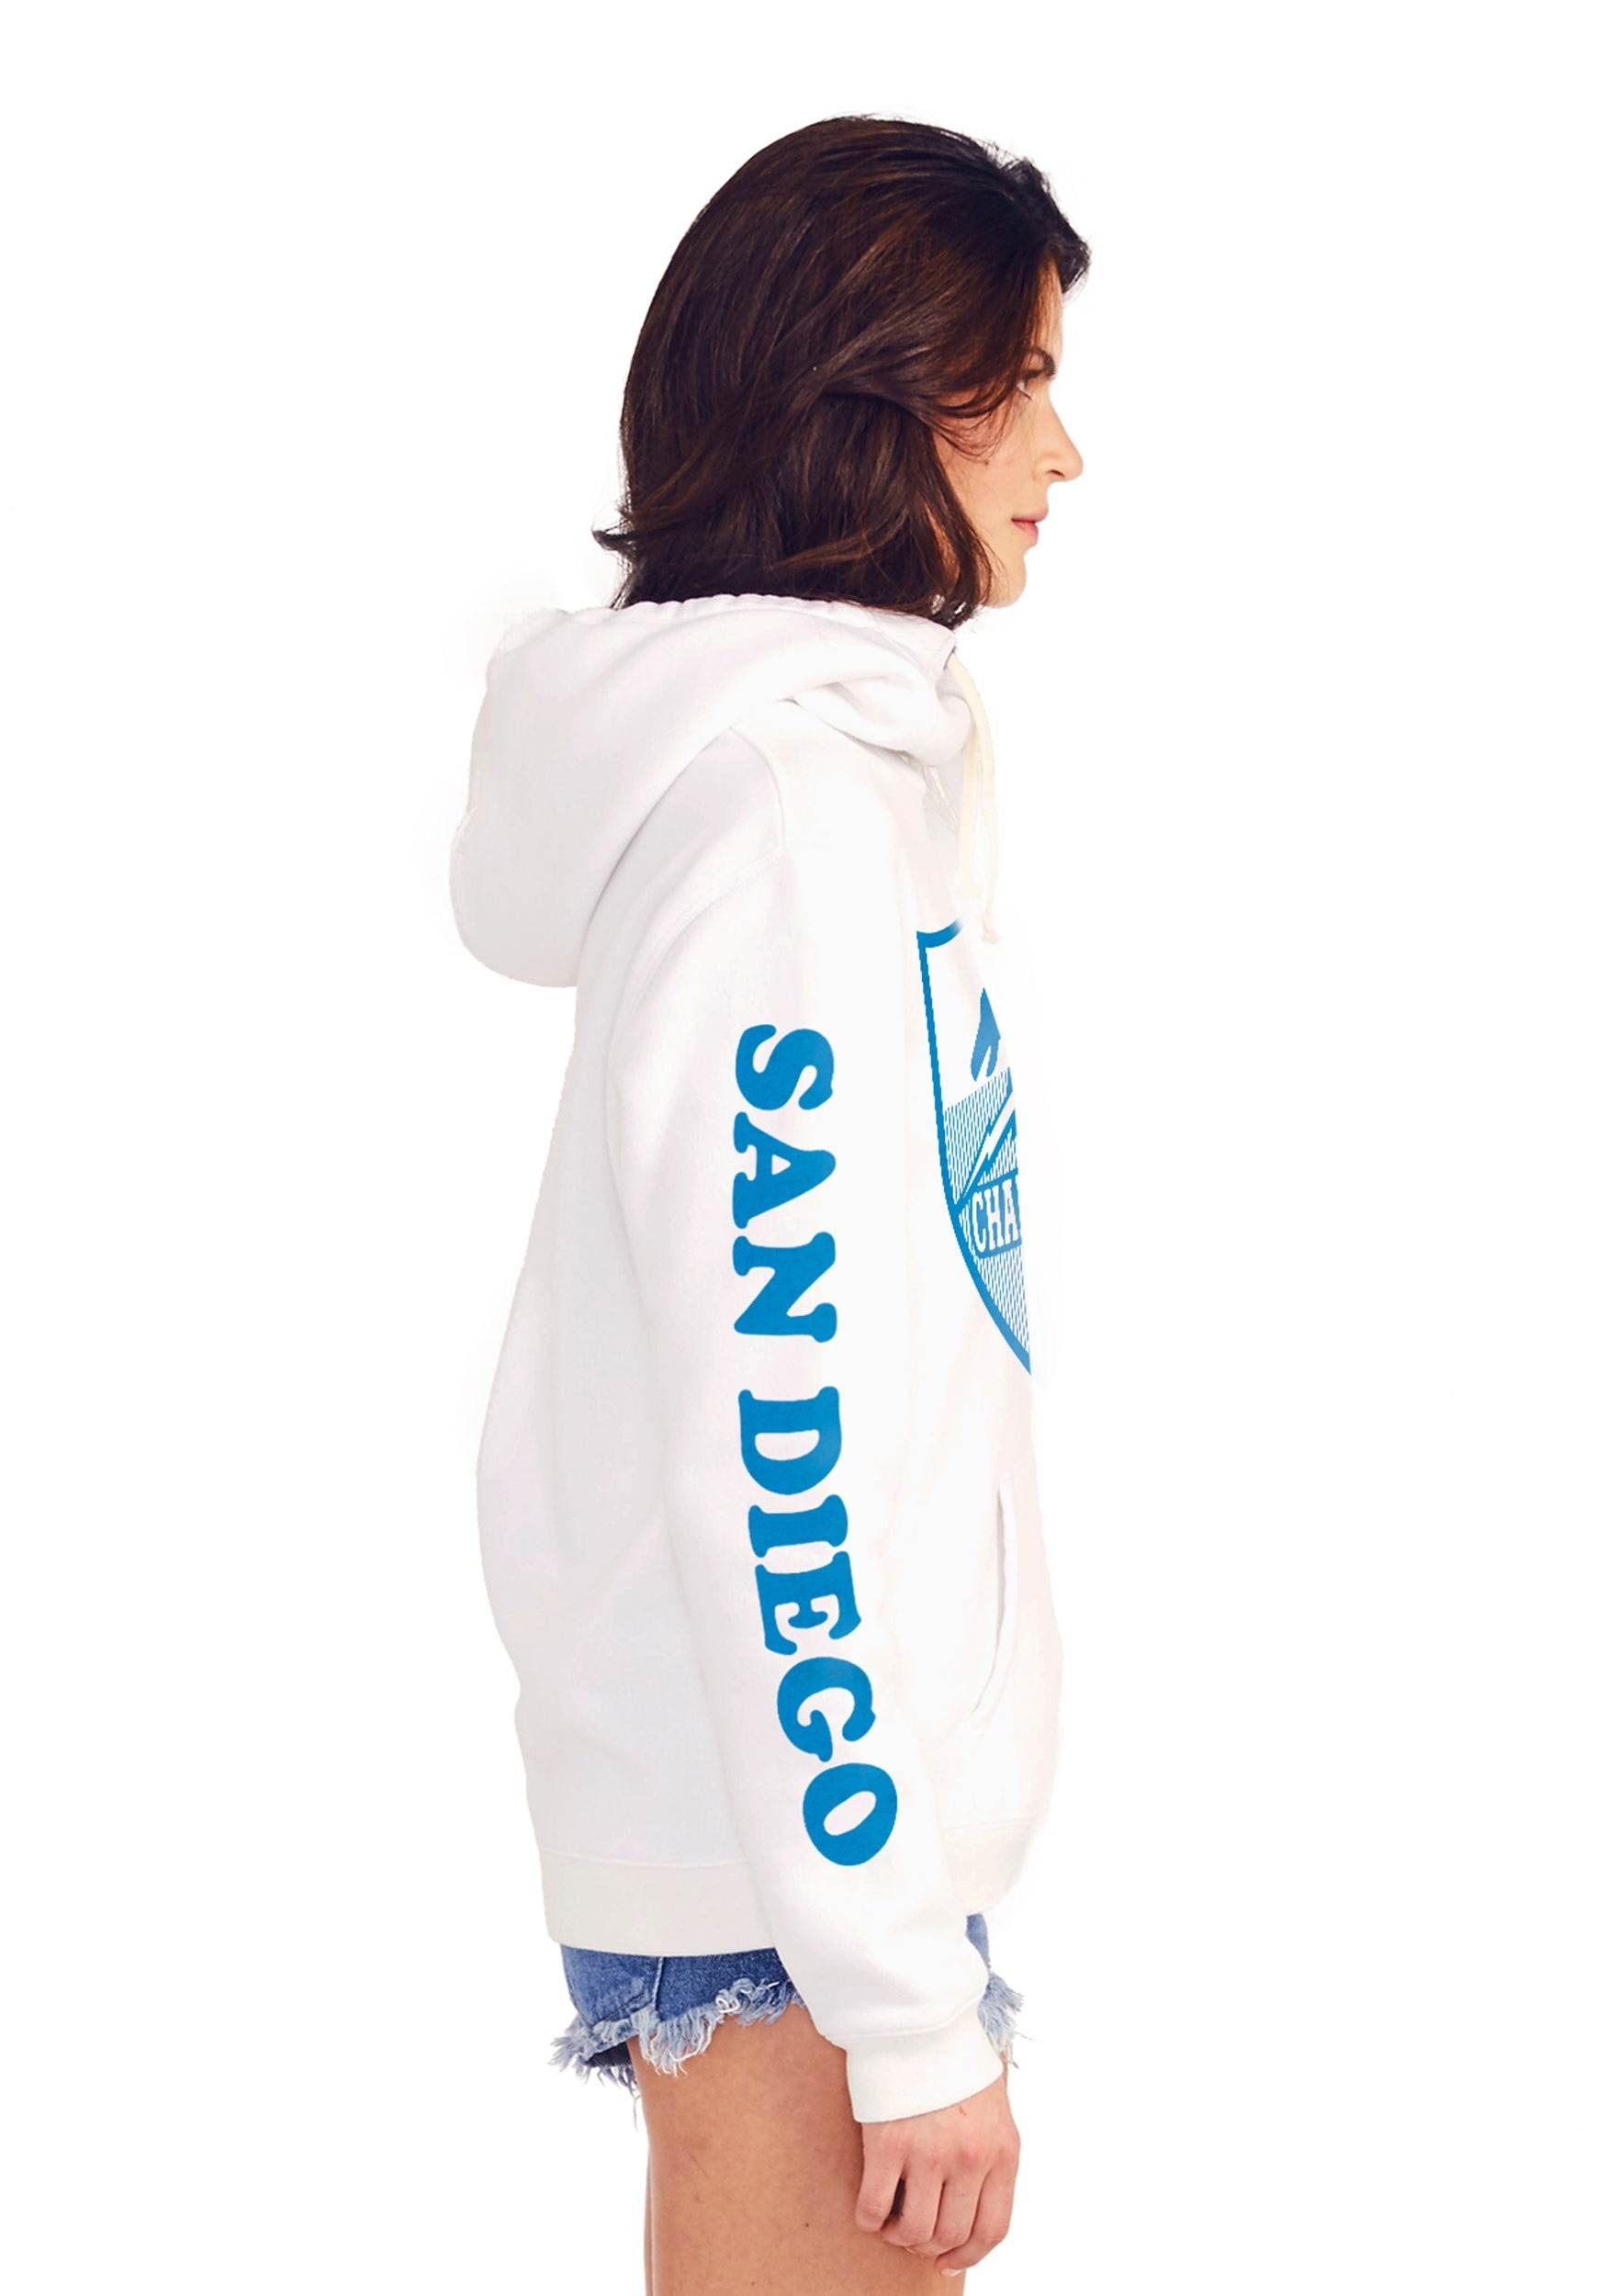 San Diego Chargers Women S Cowl Neck Hooded Sweatshirt